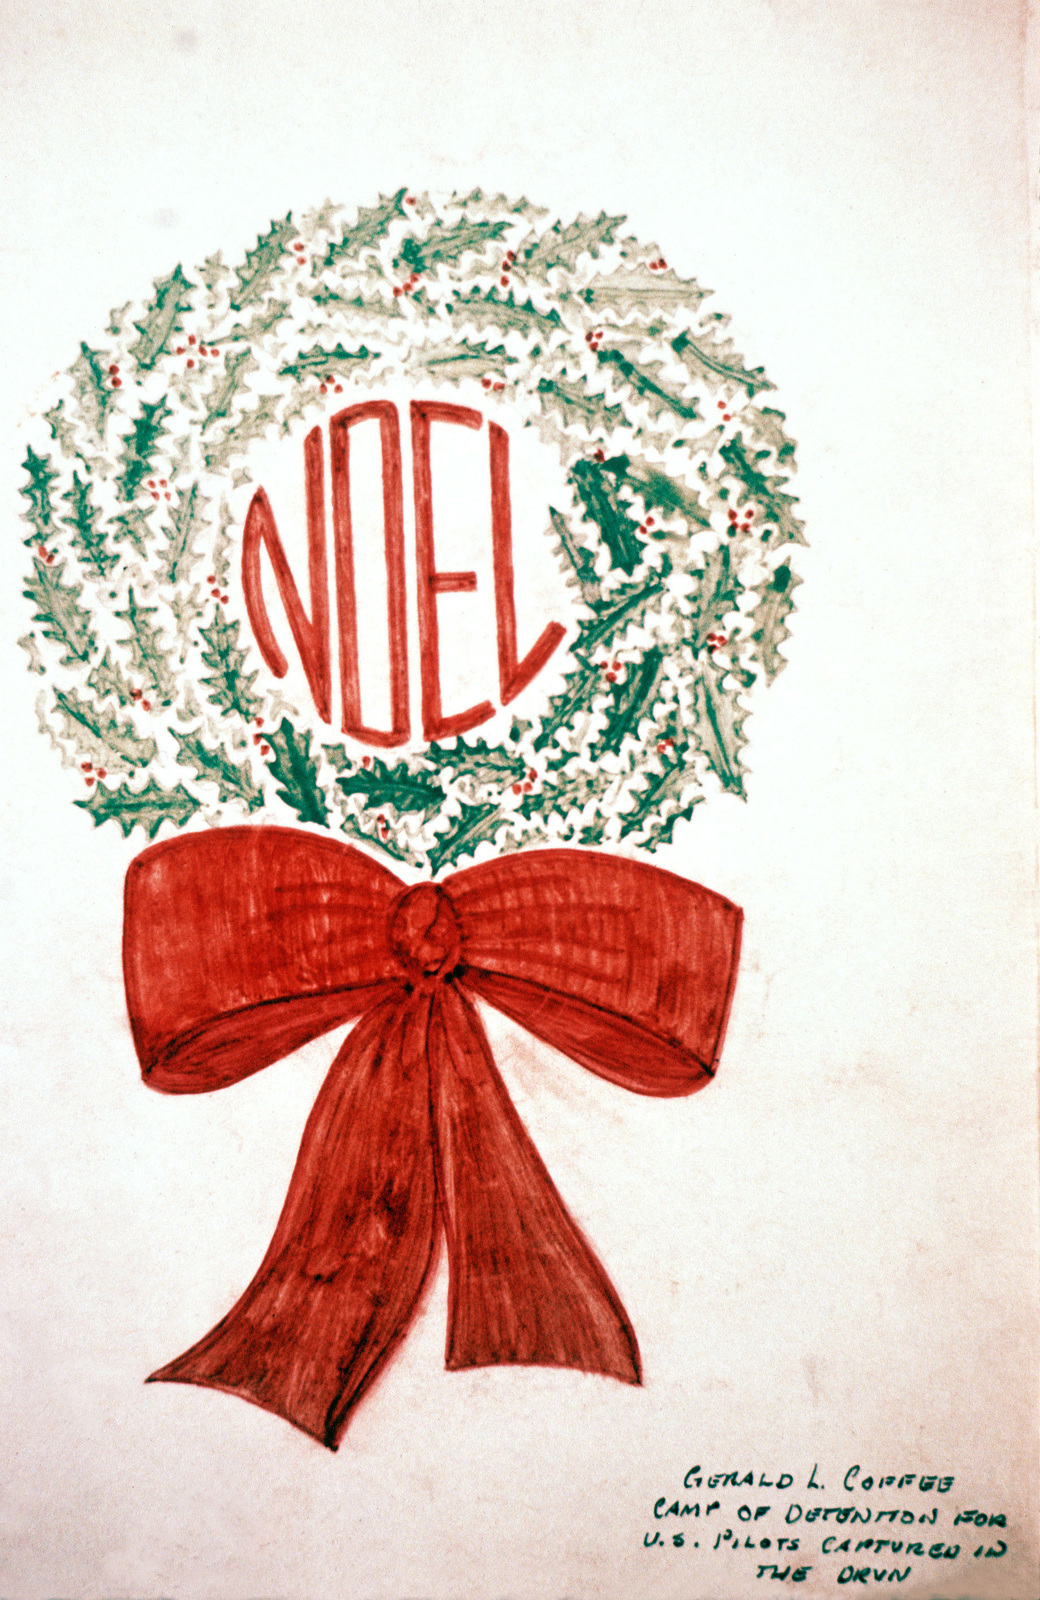 "Artwork: Prisoners of War Art - Vietnam, camp of detention for U.S. pilots captured in Vietnam - untitled (""Noel"" wreath) Artist: Gerald L. Coffee"